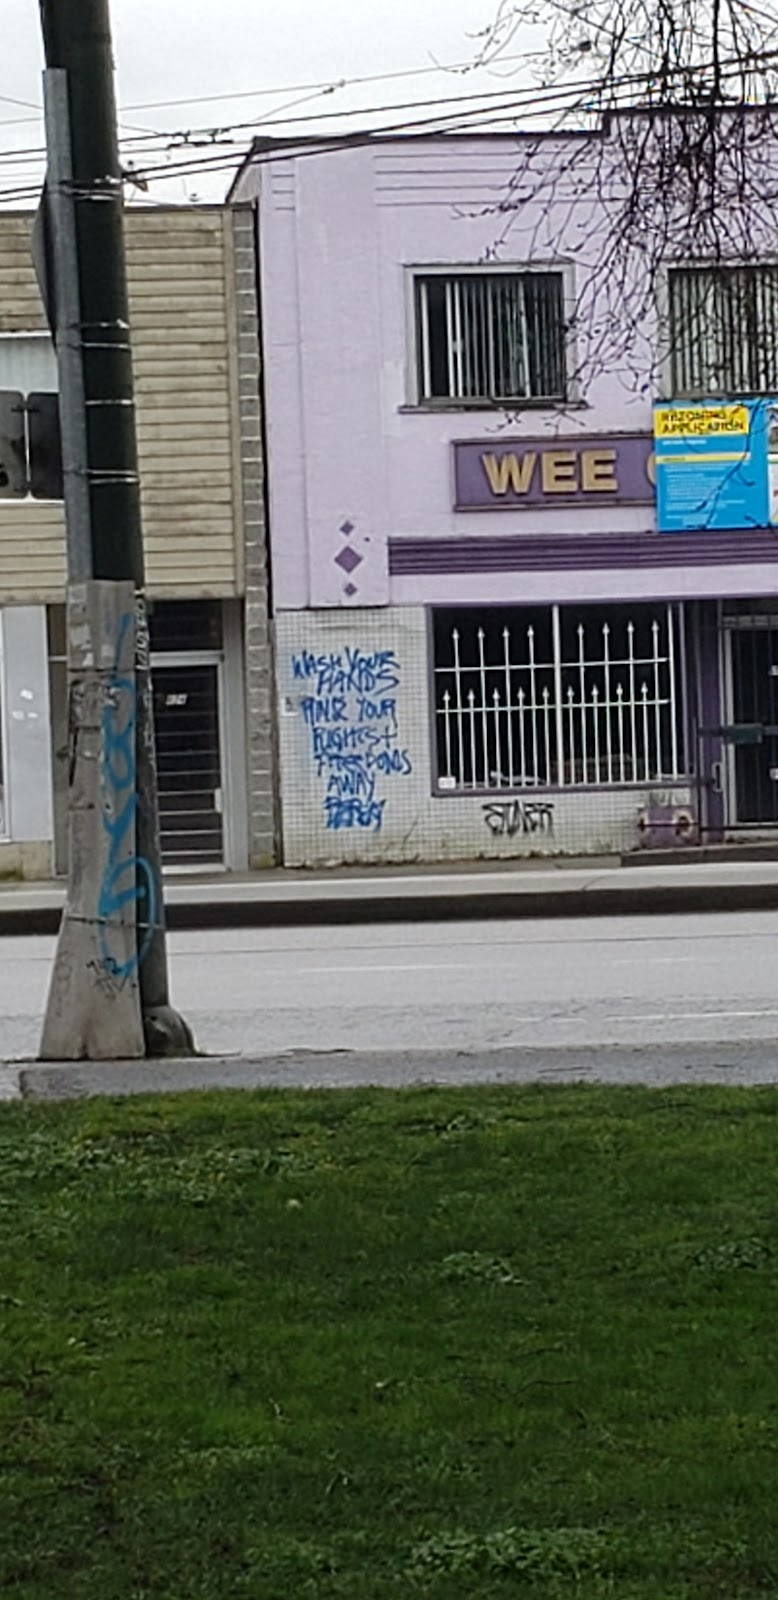 """Graffiti that says """"Wash your hands and your rights and freedoms away"""""""